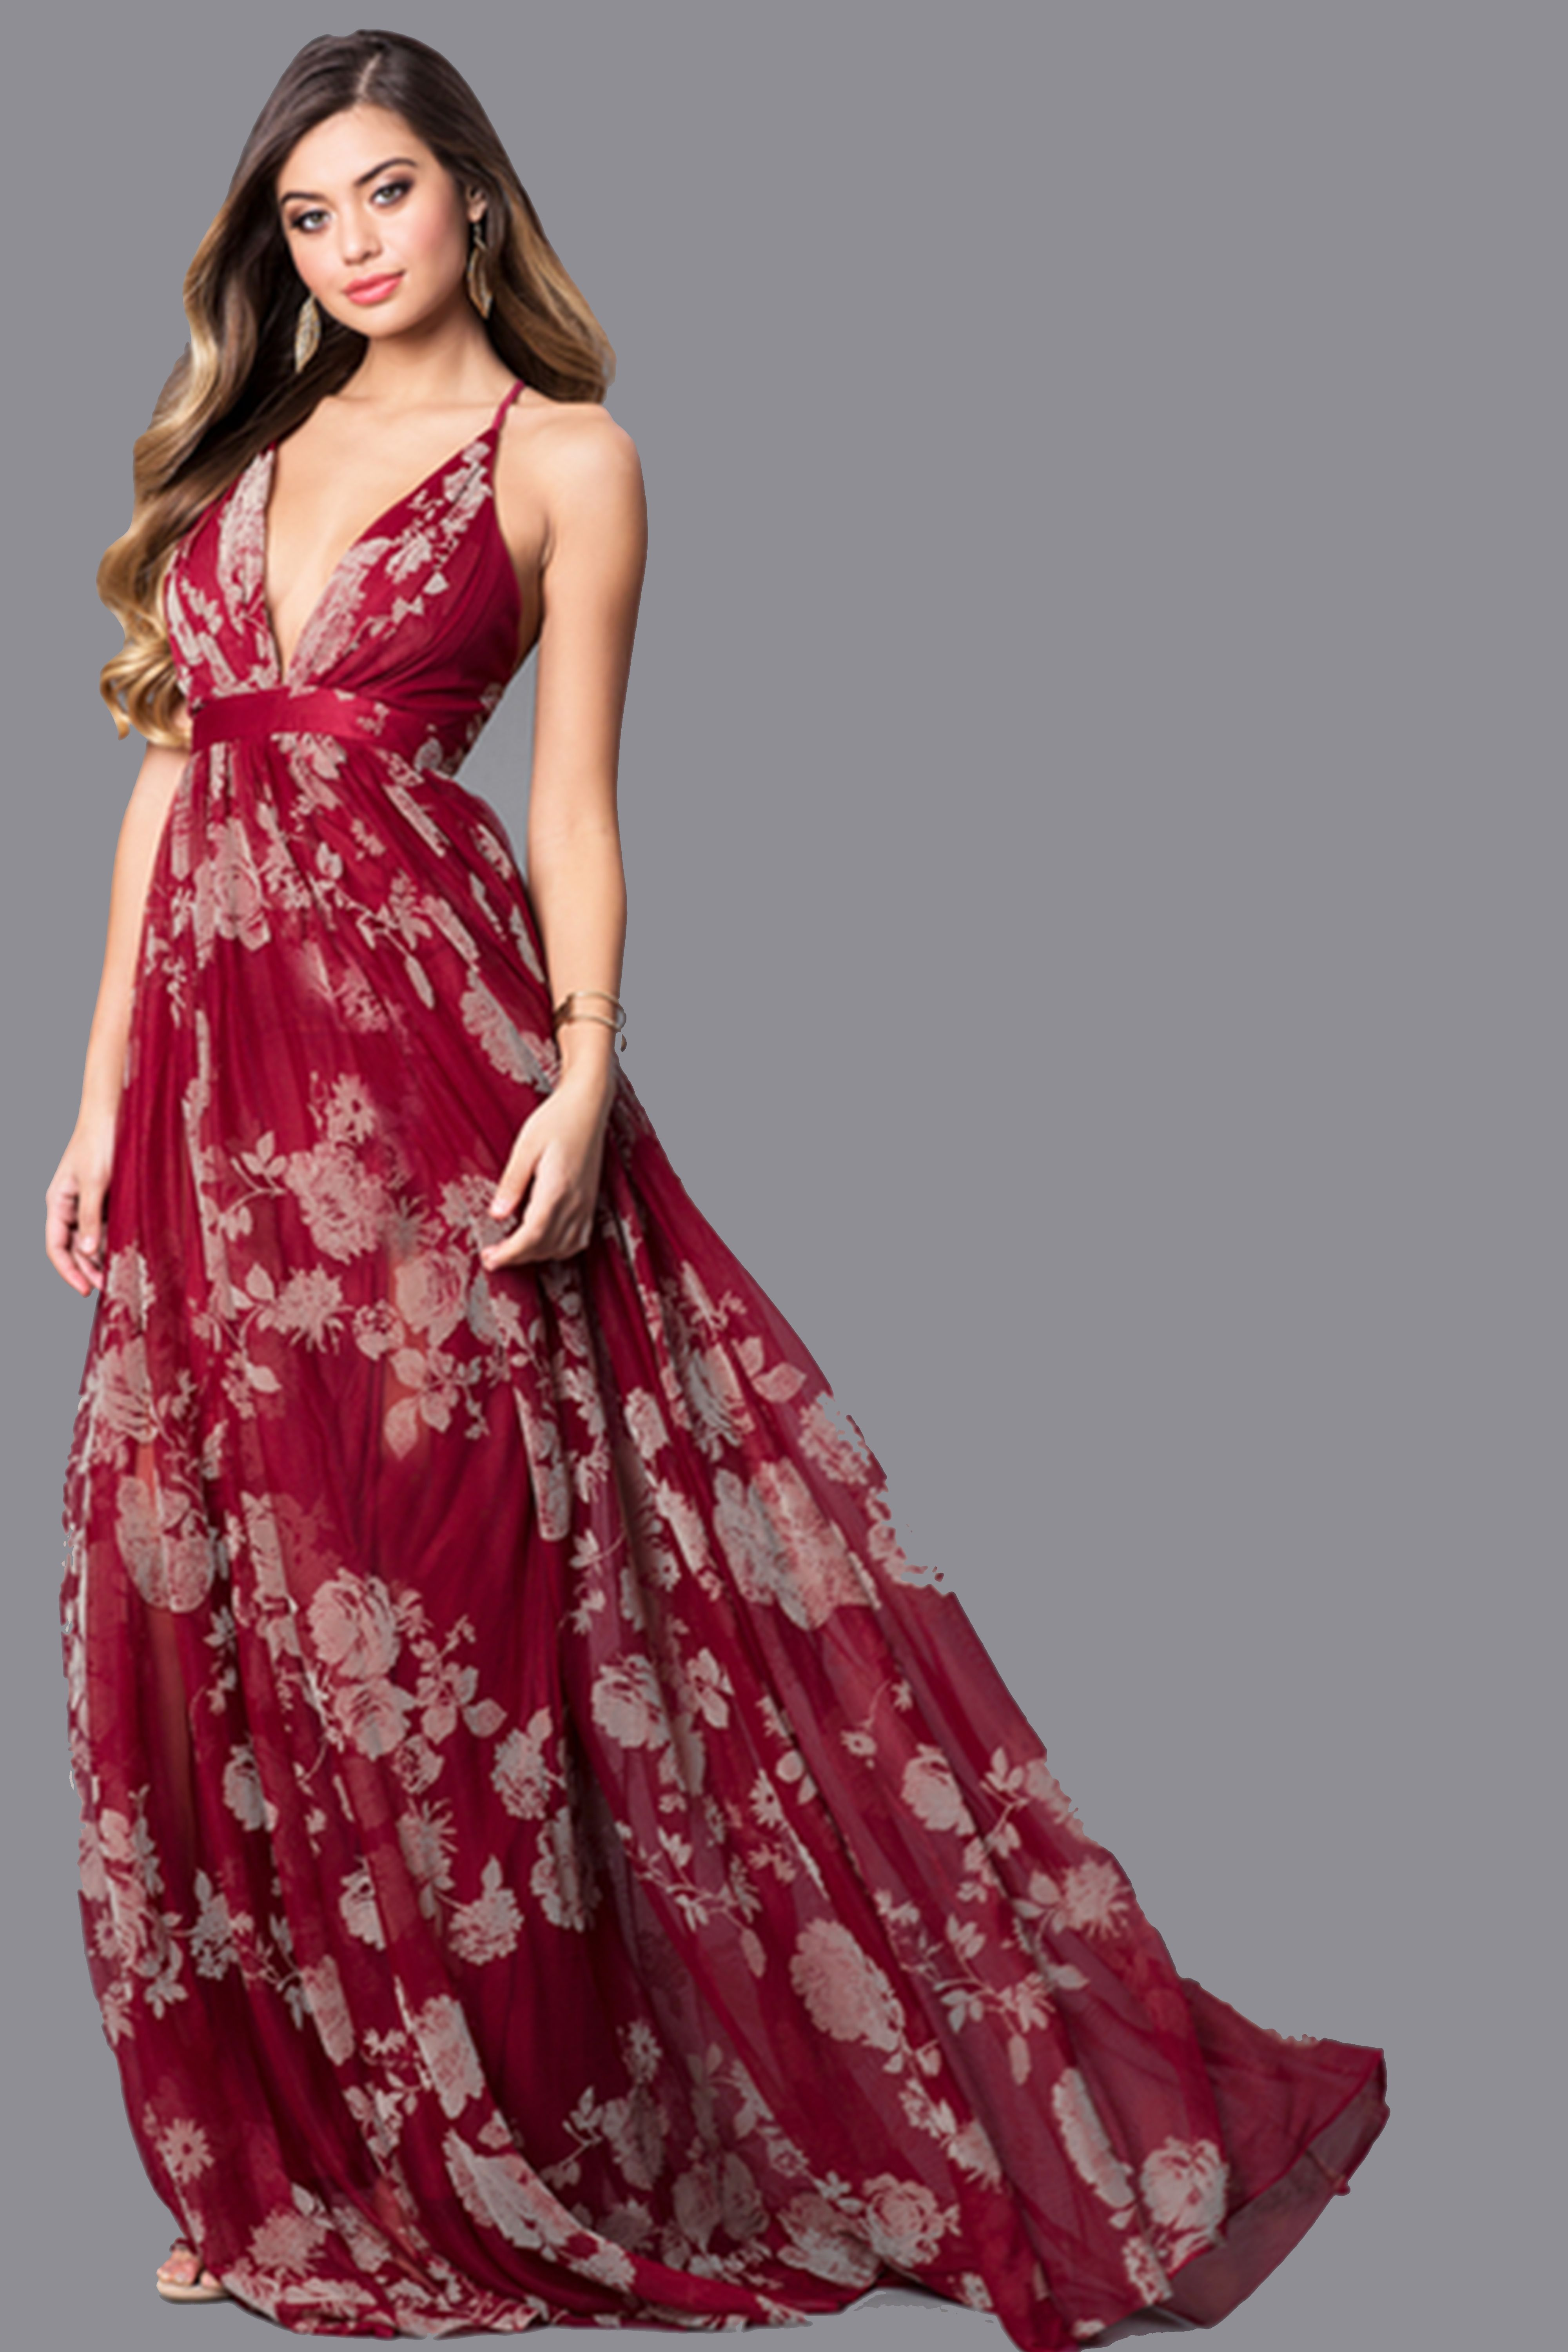 Firy Red Long Prom Dresses